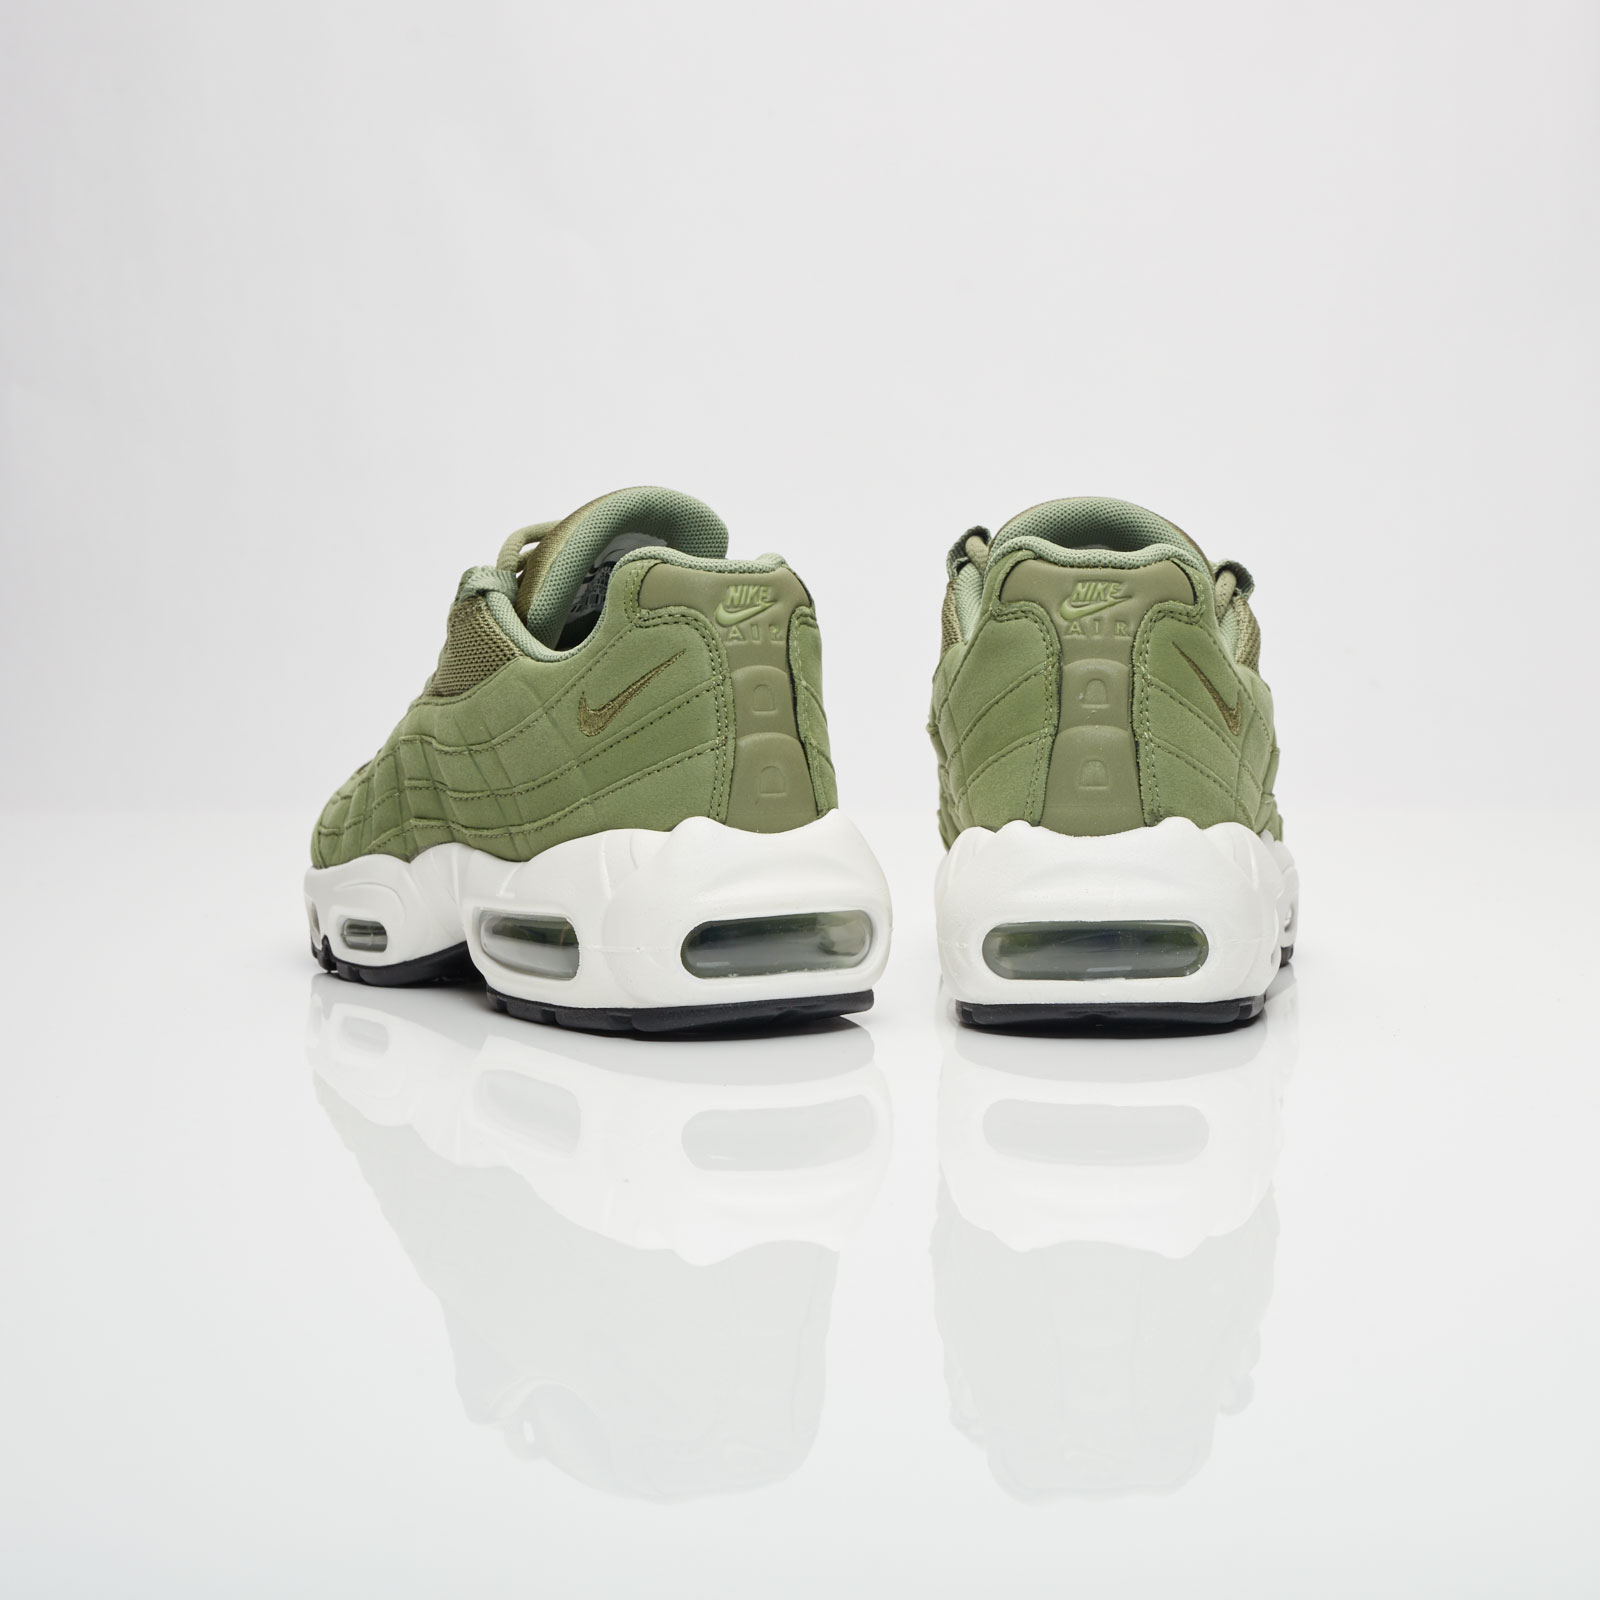 1d1e4d1906 Nike Womens Air Max 95 Palm Green - Air 23 - Air Jordan Release ...